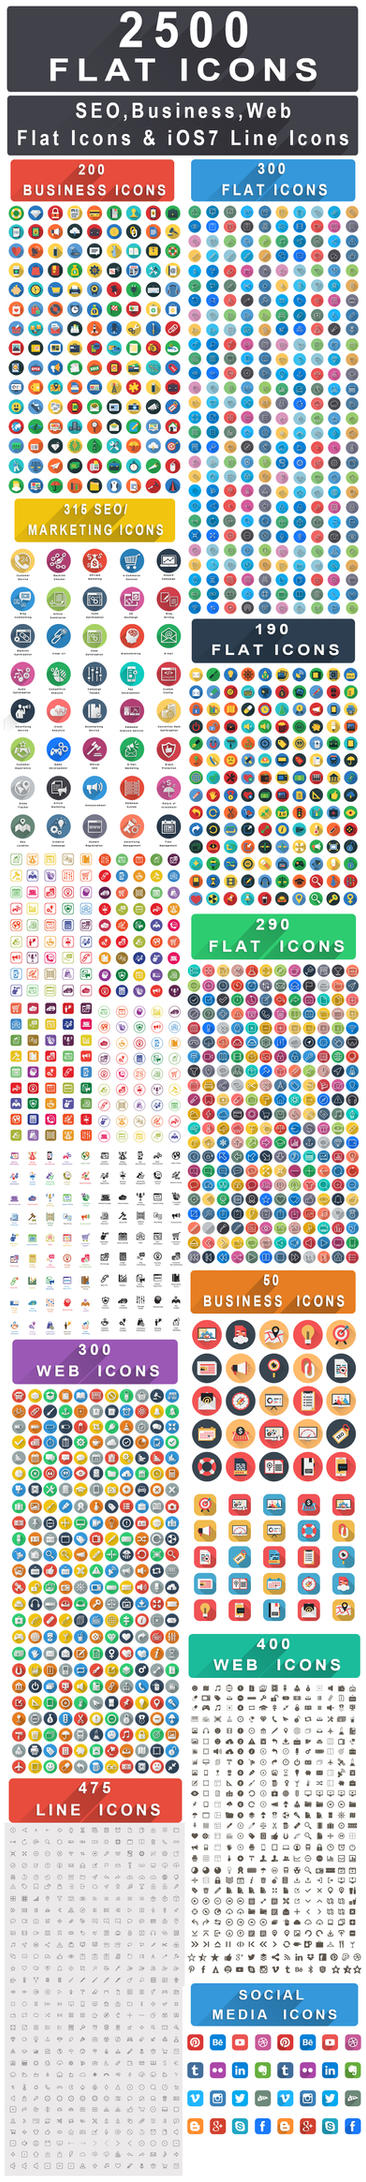 2500+ Flat Icons Bundle : Web, Seo, Business Icons by CURSORCH